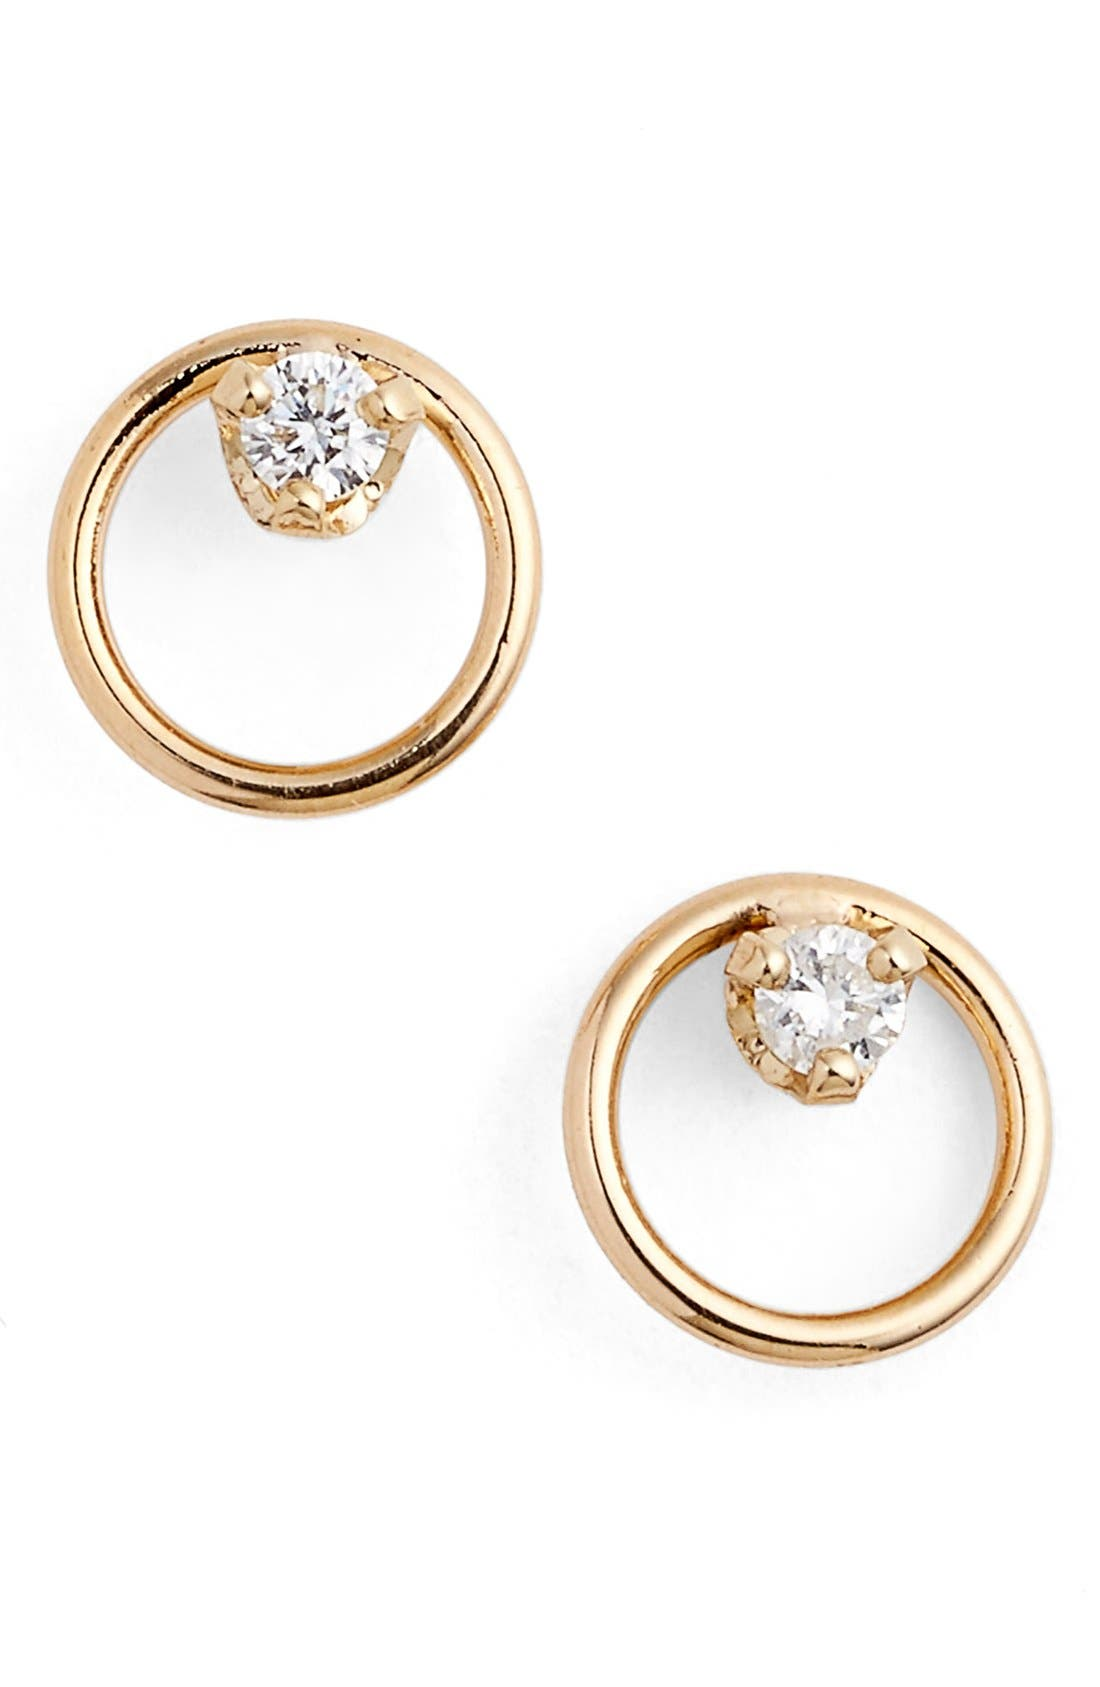 Diamond Circle Stud Earrings,                             Main thumbnail 1, color,                             YELLOW GOLD